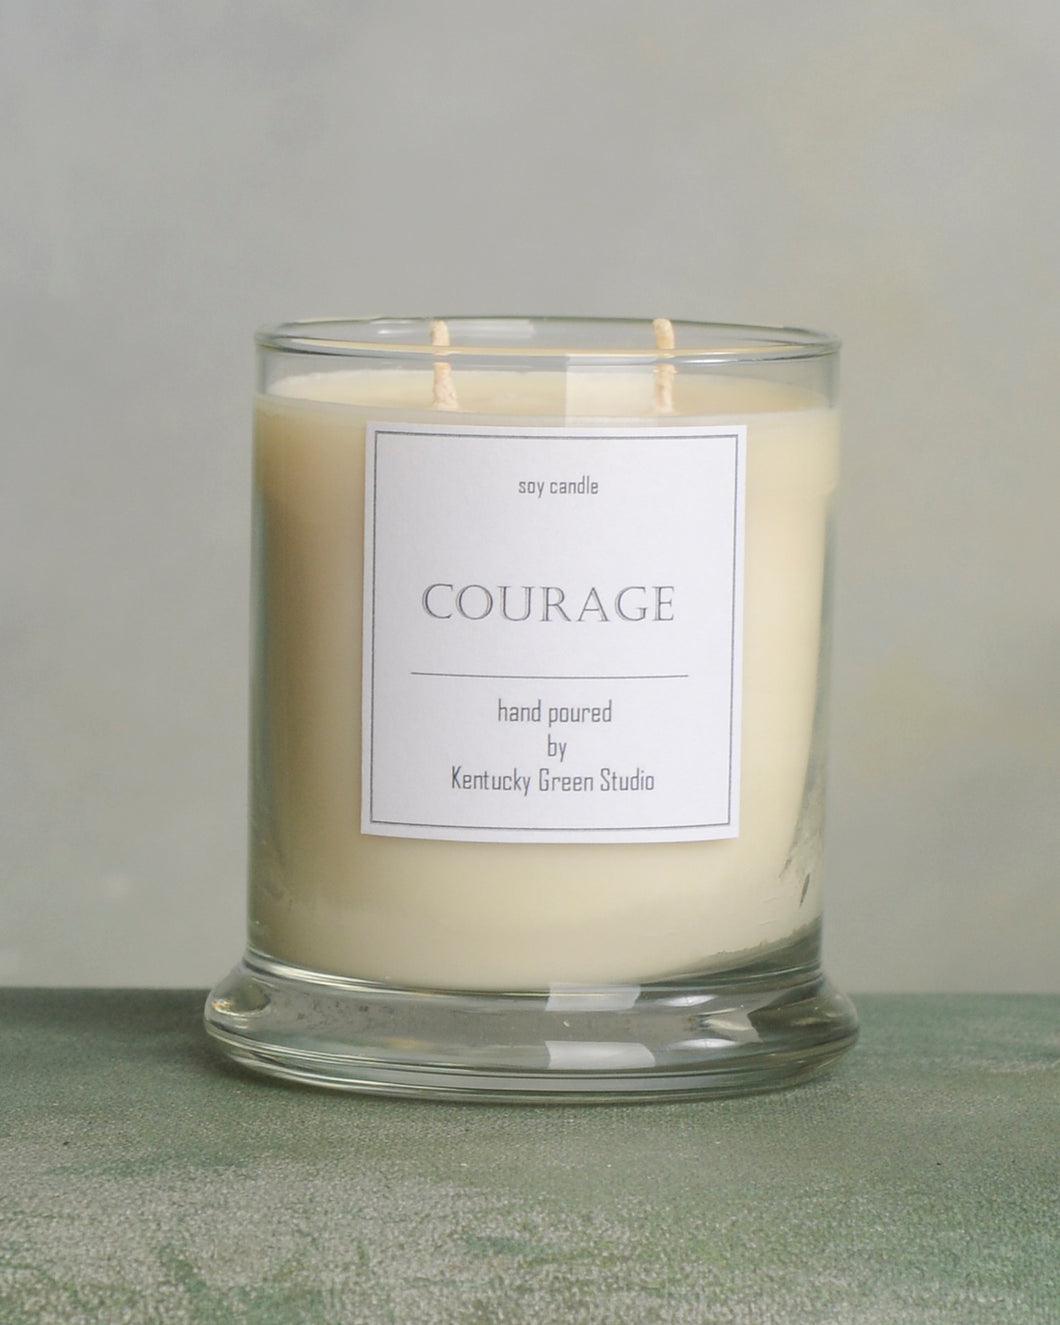 Courage Soy Candles made in Lexington, Kentucky (KY)